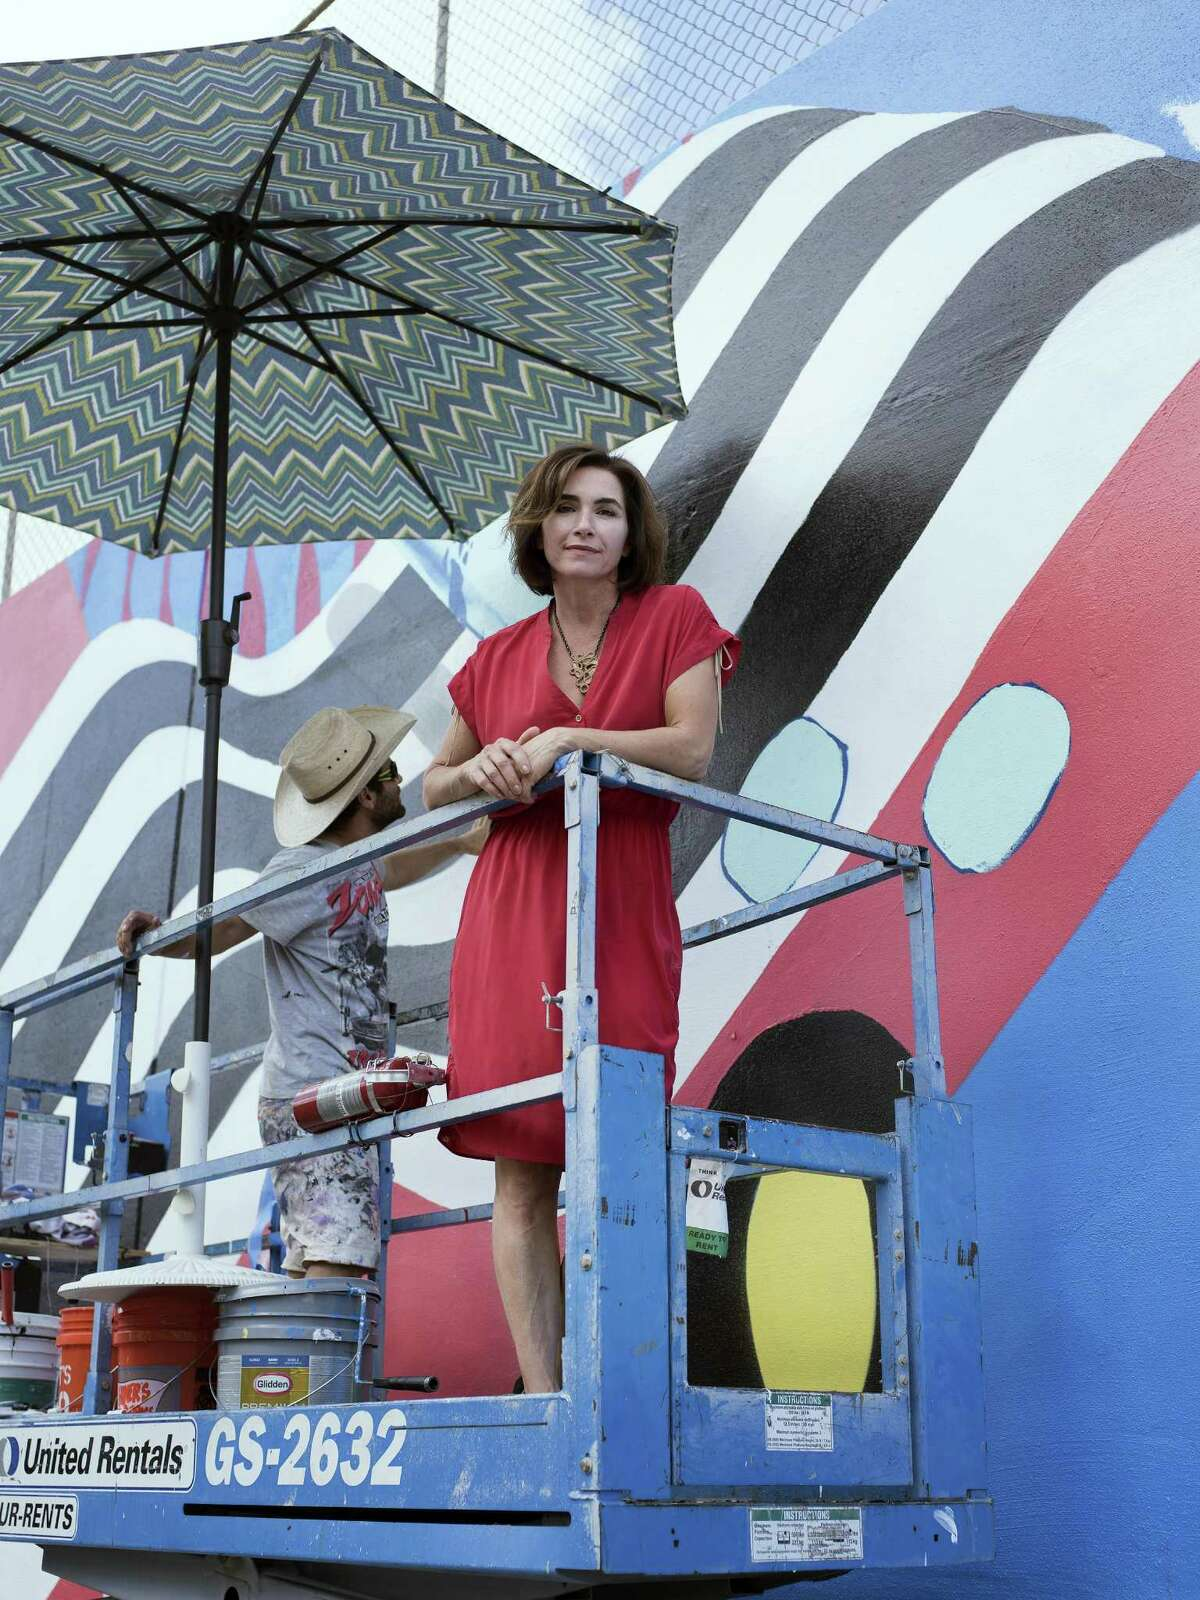 Liz Tullis, president of the board of Luminaria, poses for a portrait by the mural being created by artist Iker Muro (left) in San Antonio on Oct. 28. Tullis has been a member the board of Luminaria since 2010.